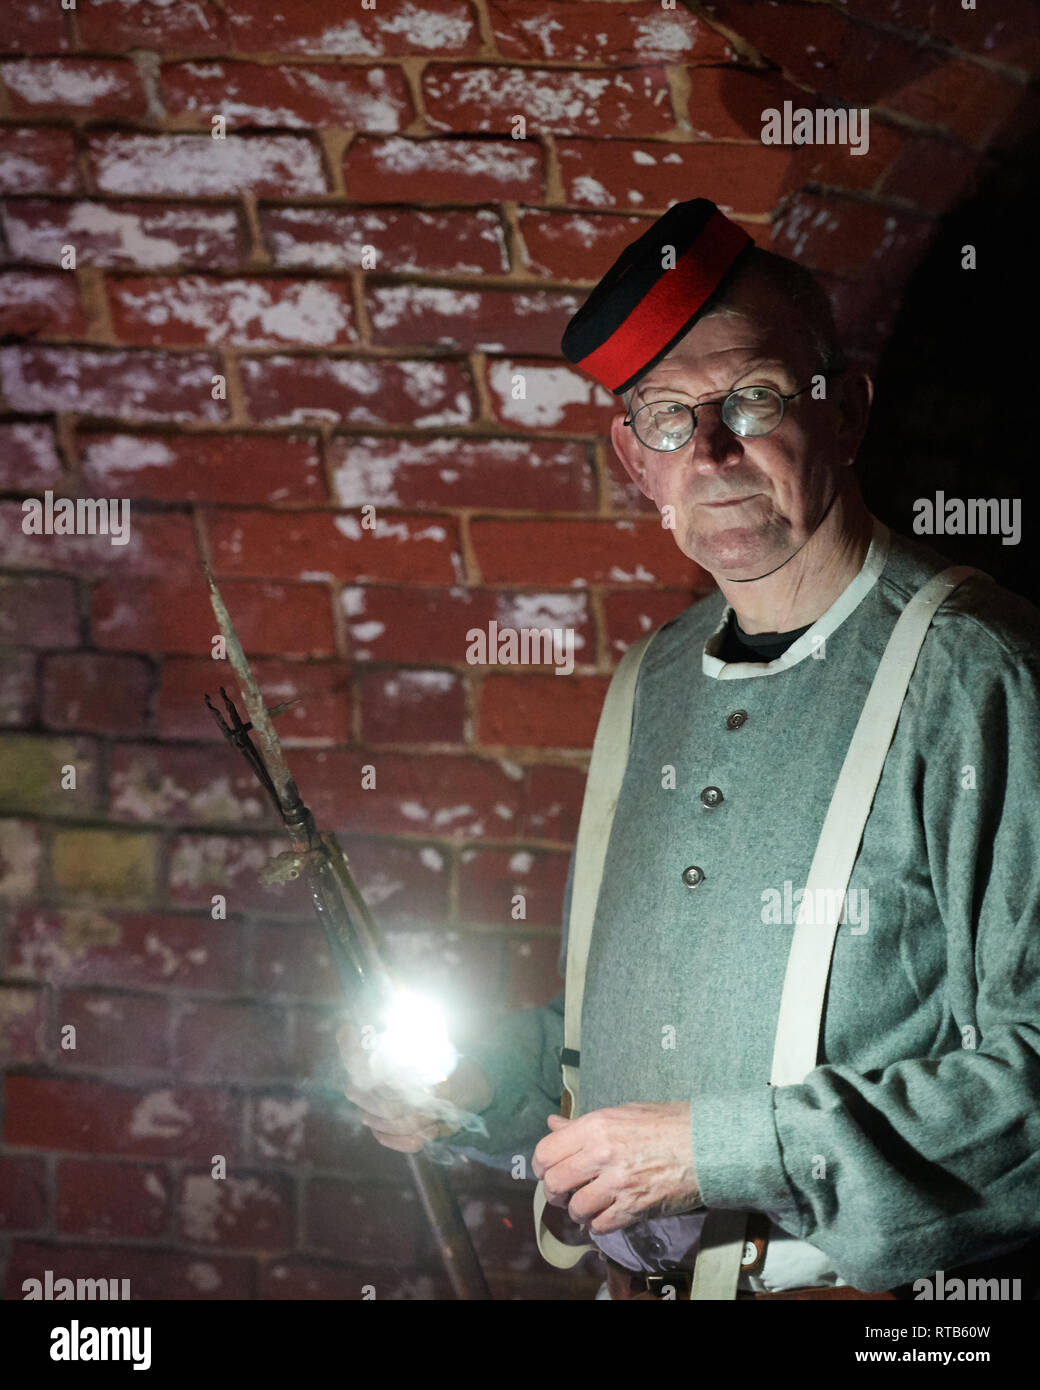 Victorian re-enactment Artillery Gunner (1878) with illumination from phosphorus taper. Image on location at Fort Nelson, Portsmouth - Stock Image